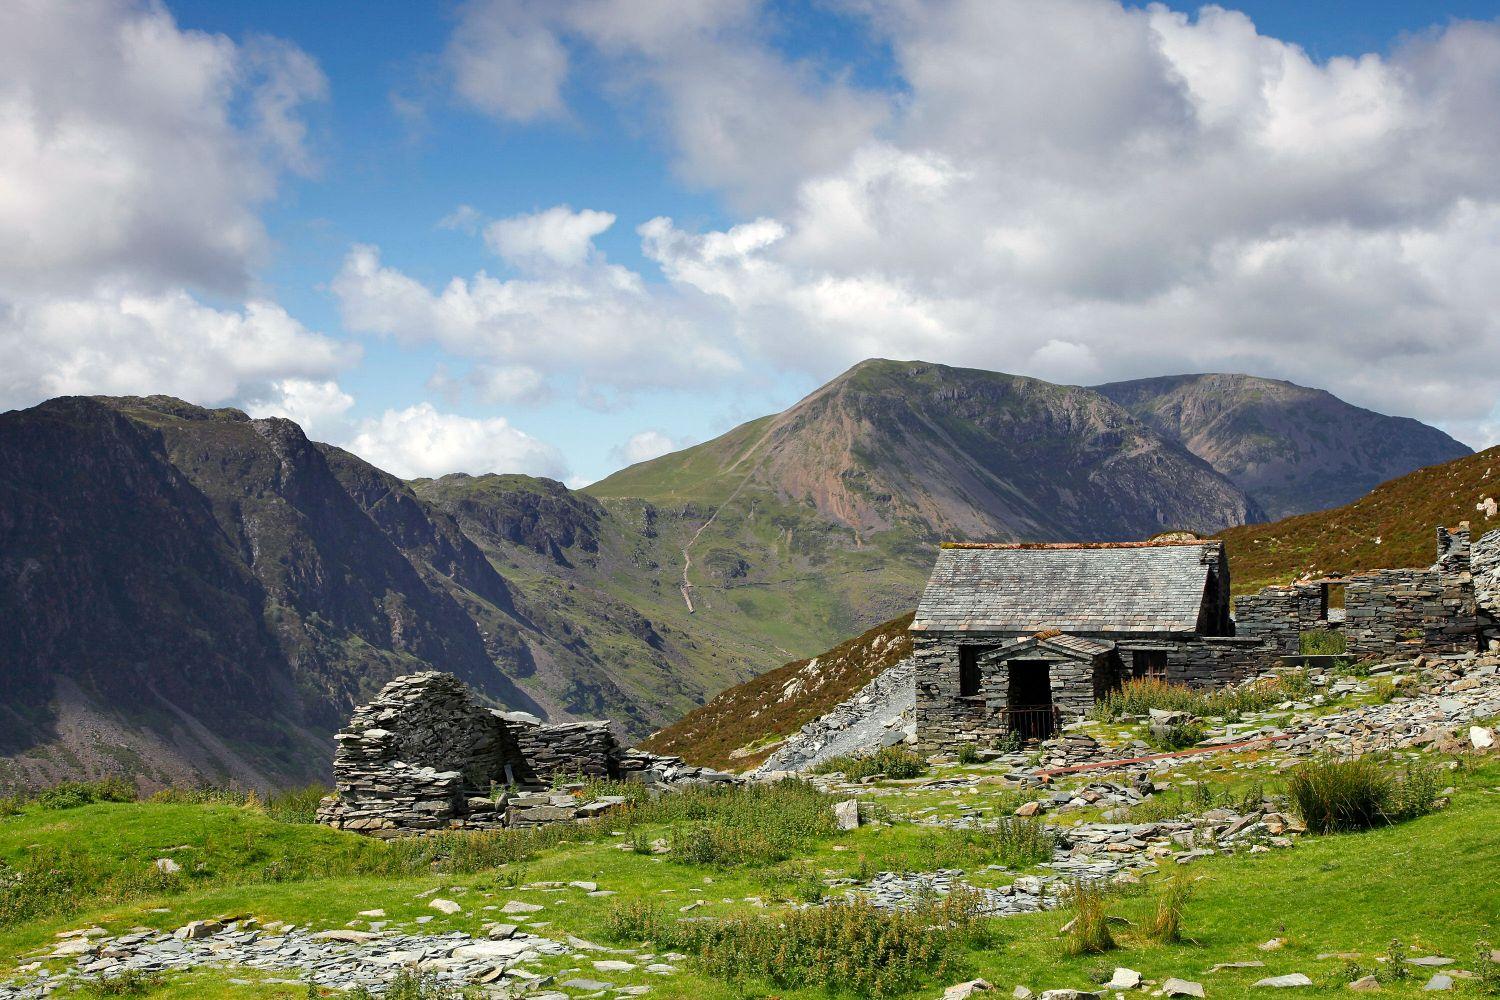 Haystacks and High Crag from Dubs Hut Bothy